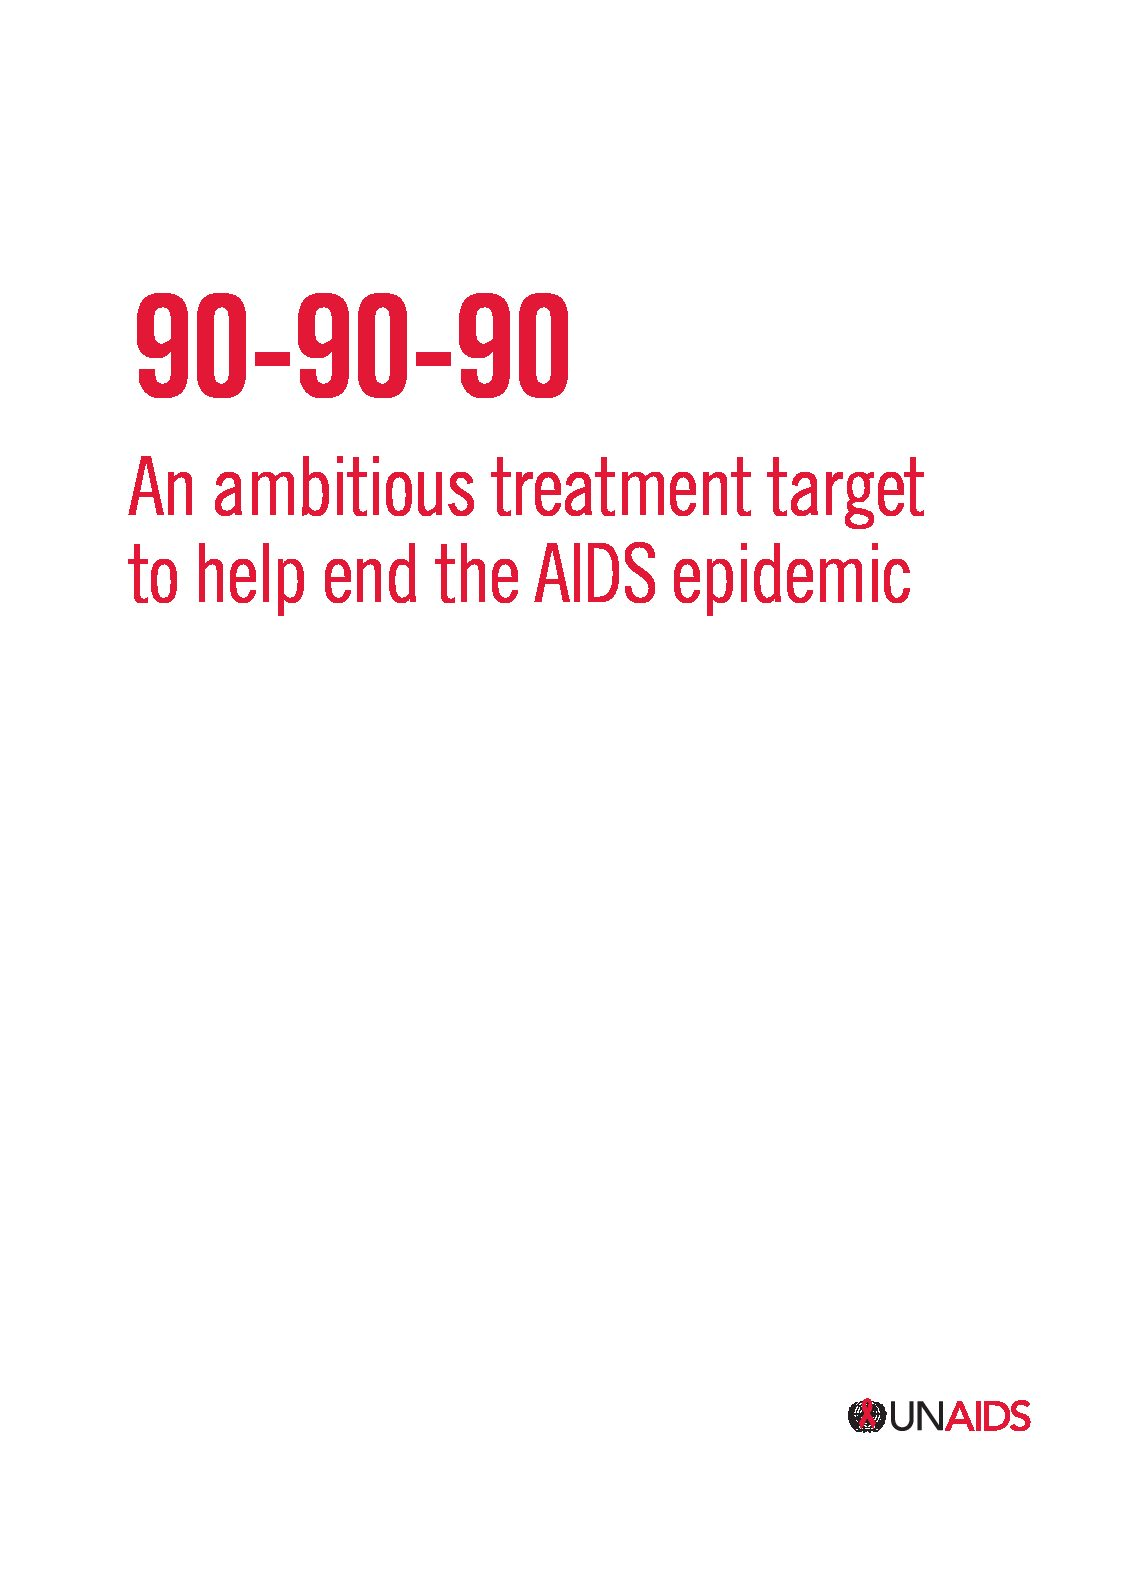 90-90-90 An ambitious treatment target to help end the AIDS epidemic